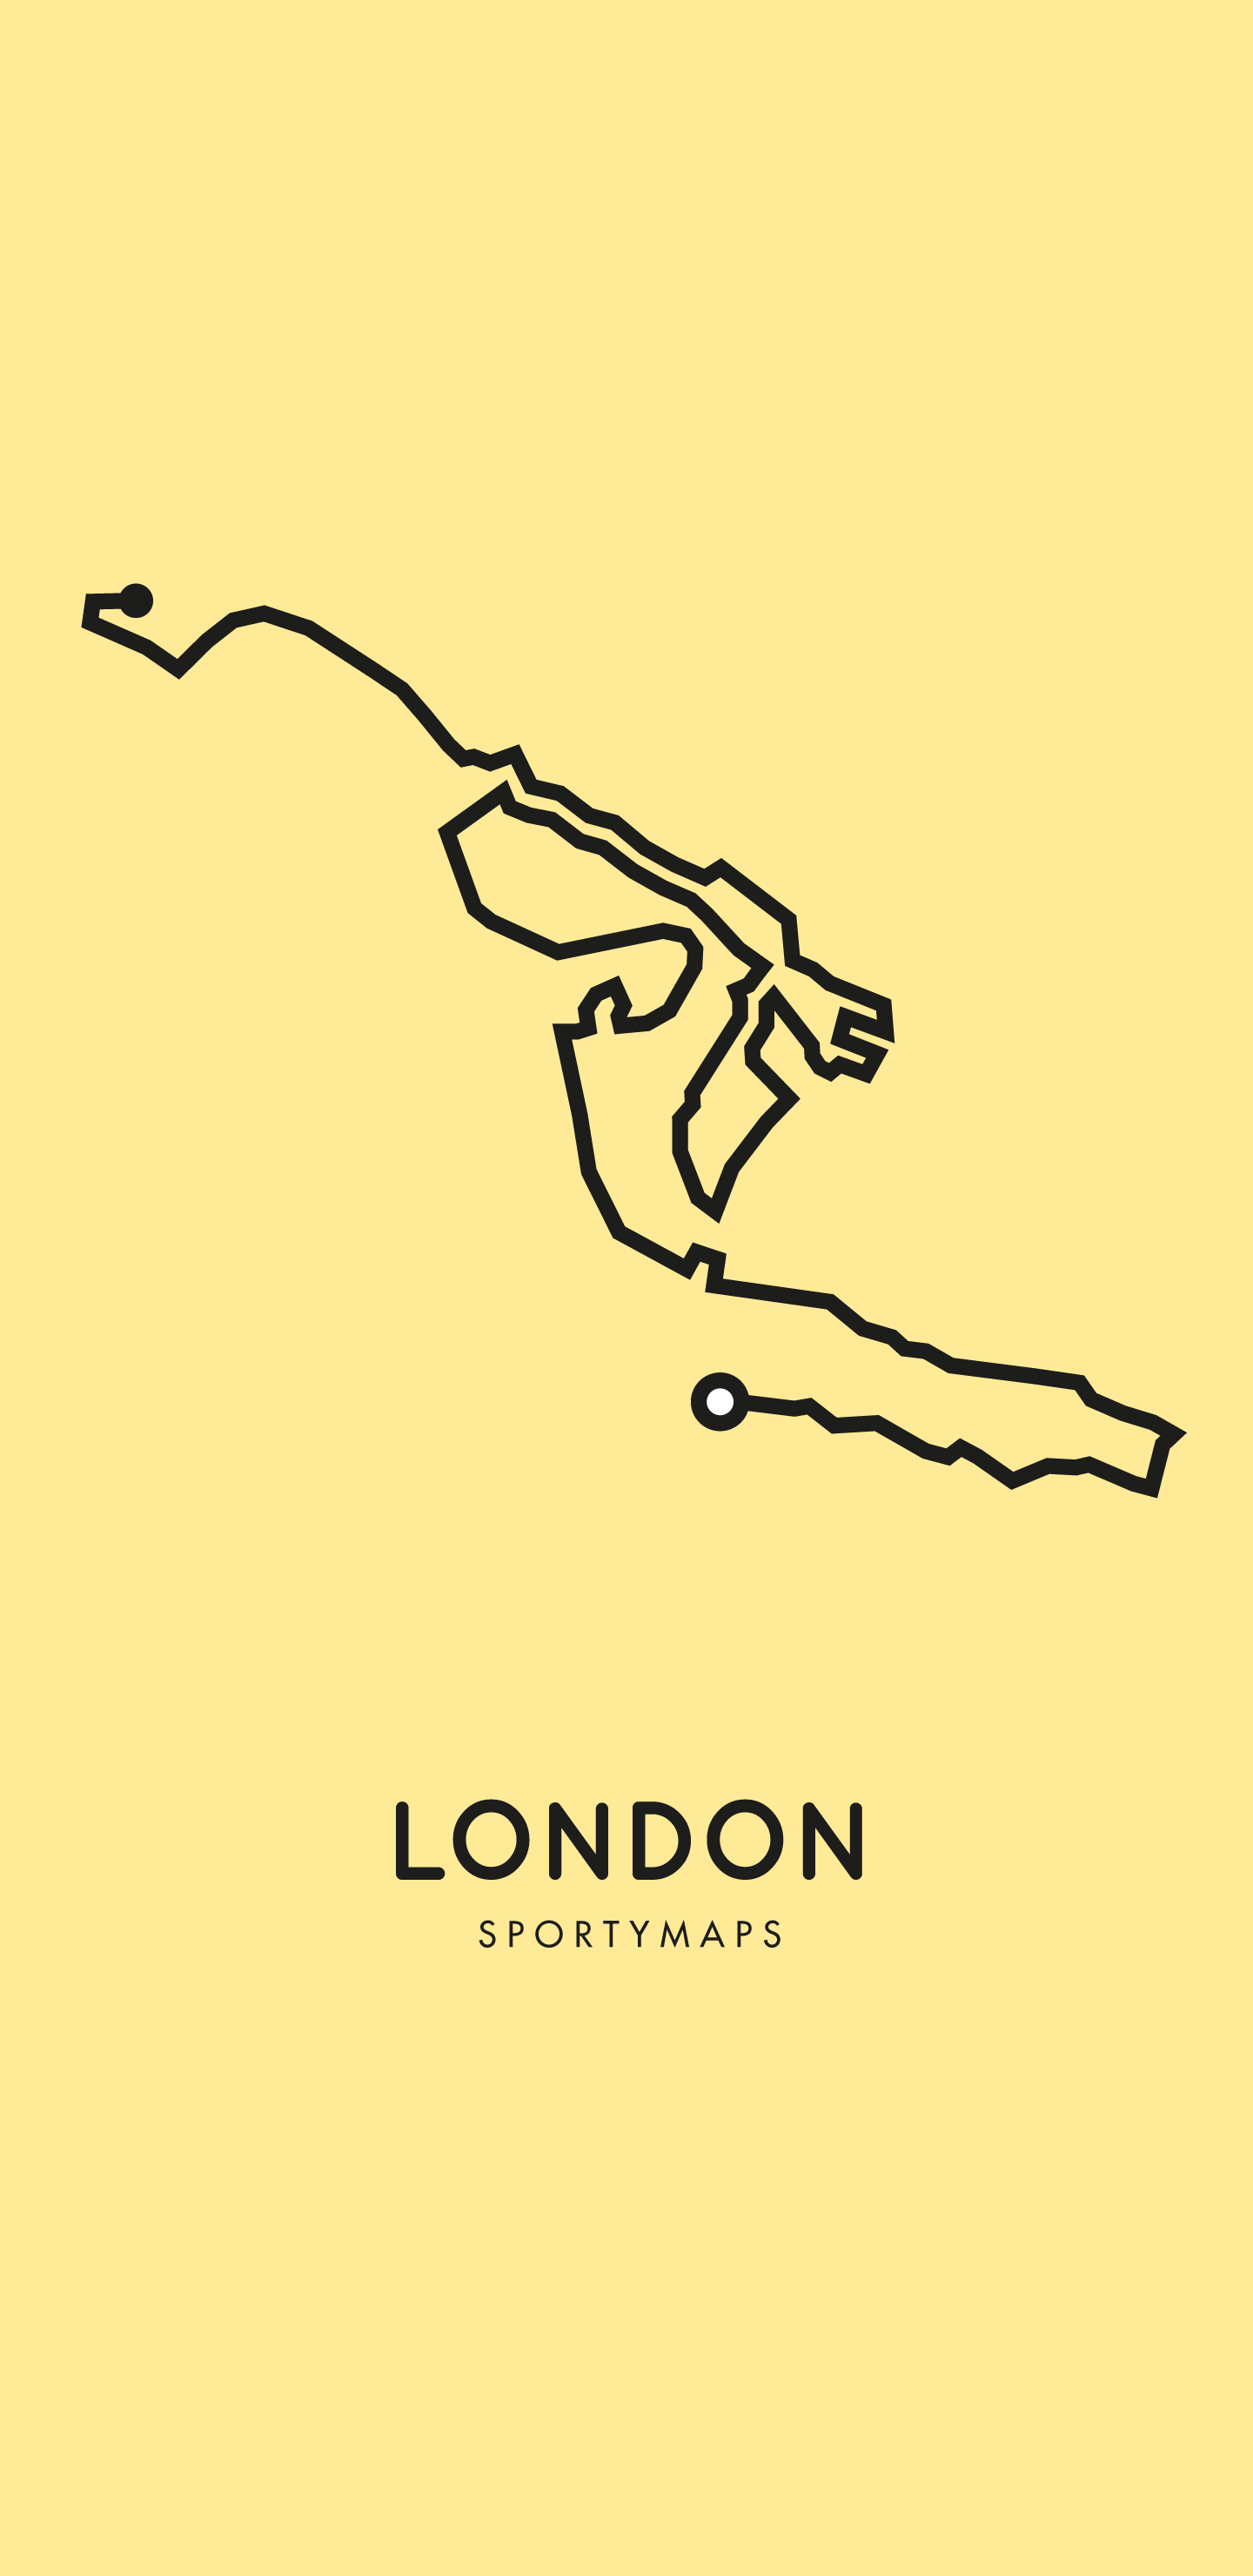 Sportymaps-London-marathon-yellow